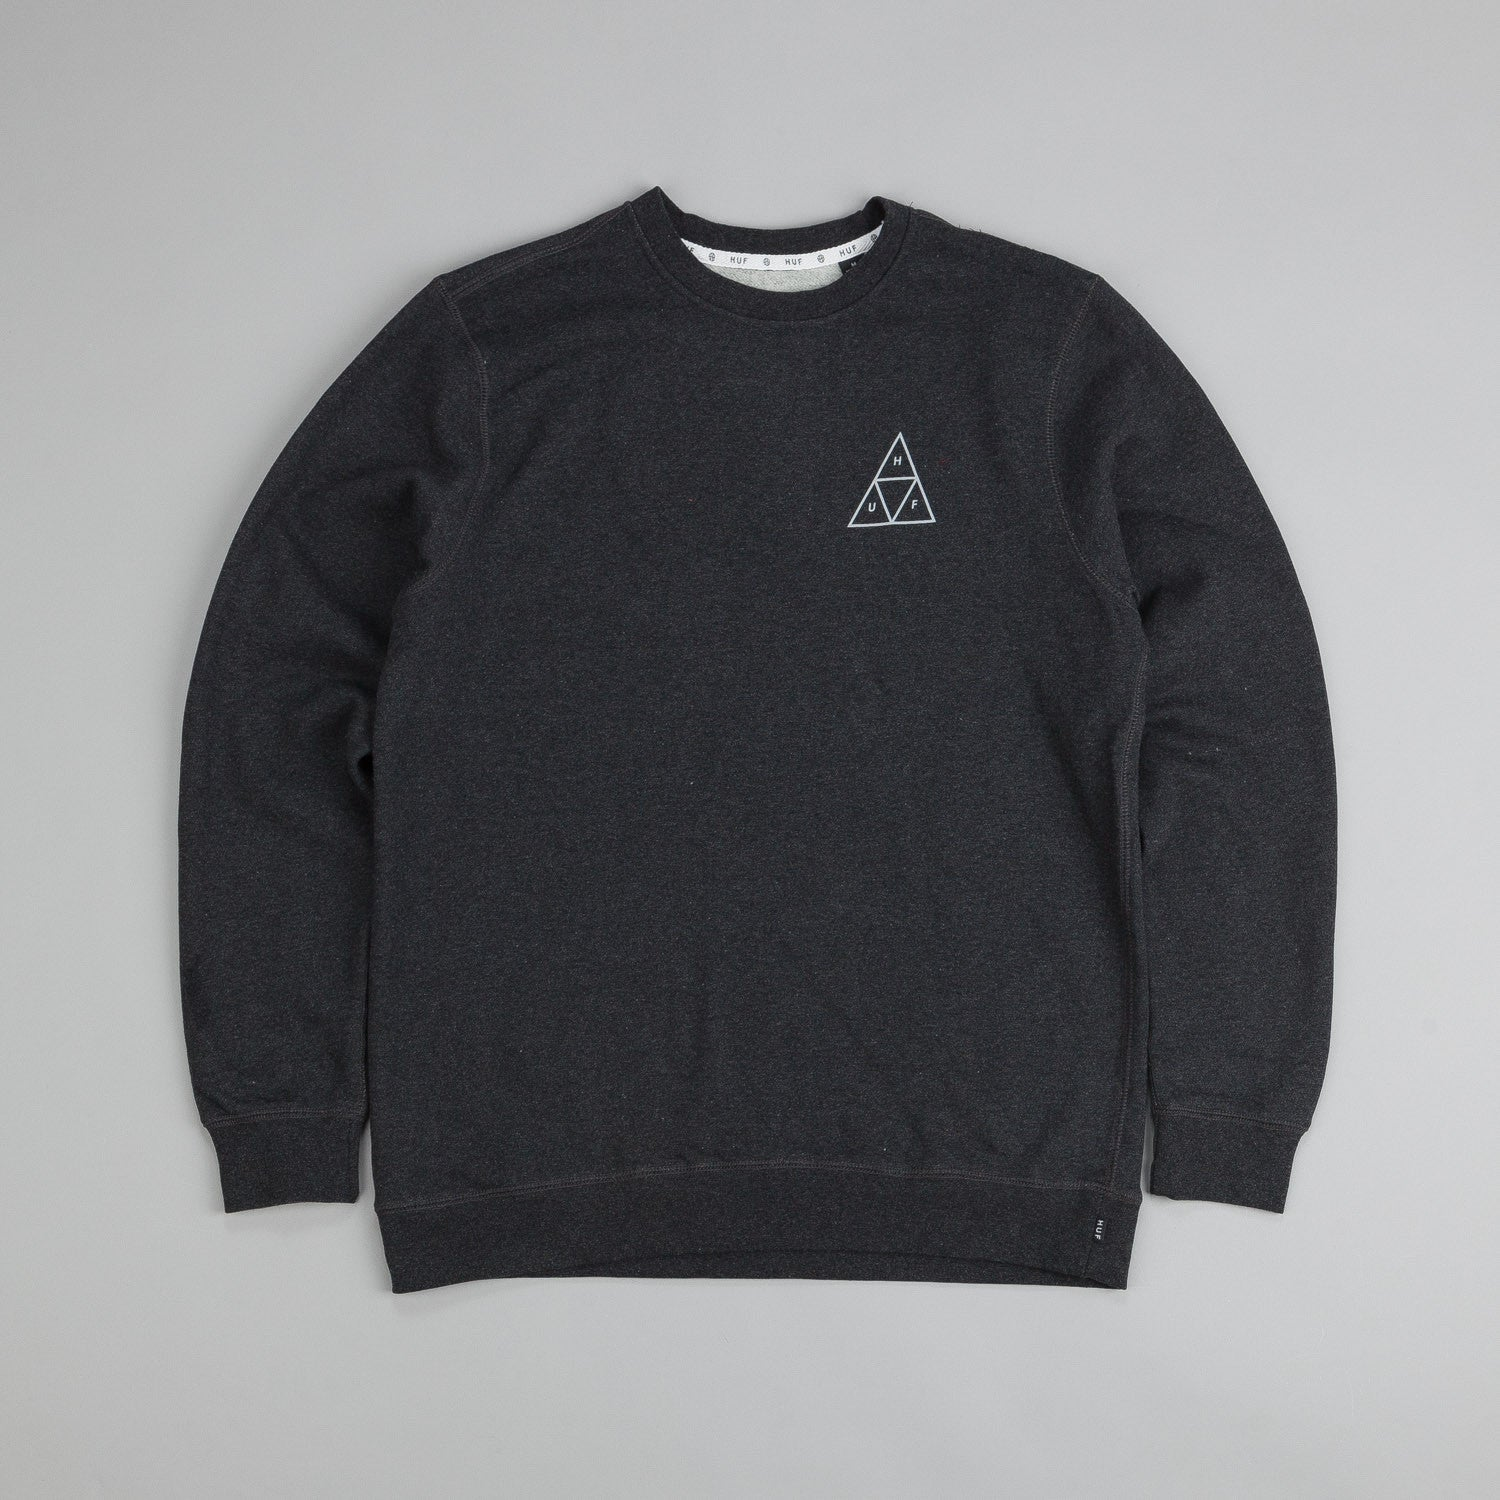 Huf Triple Triangle Crew Neck Sweatshirt Charcoal Heather